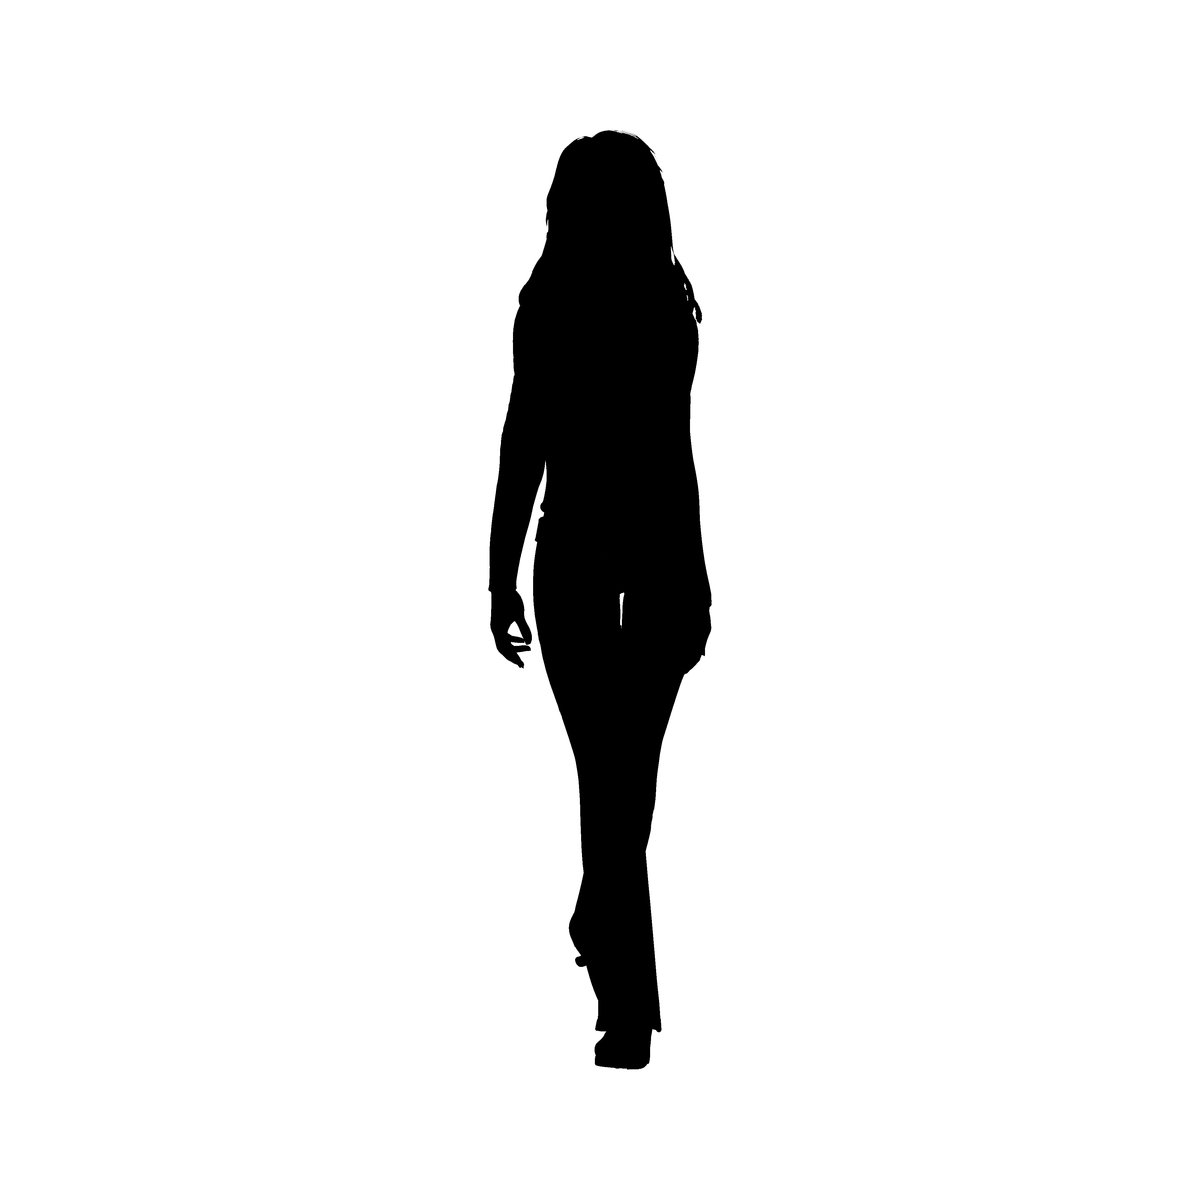 Free Silhouette Stock Photo - FreeImages.com